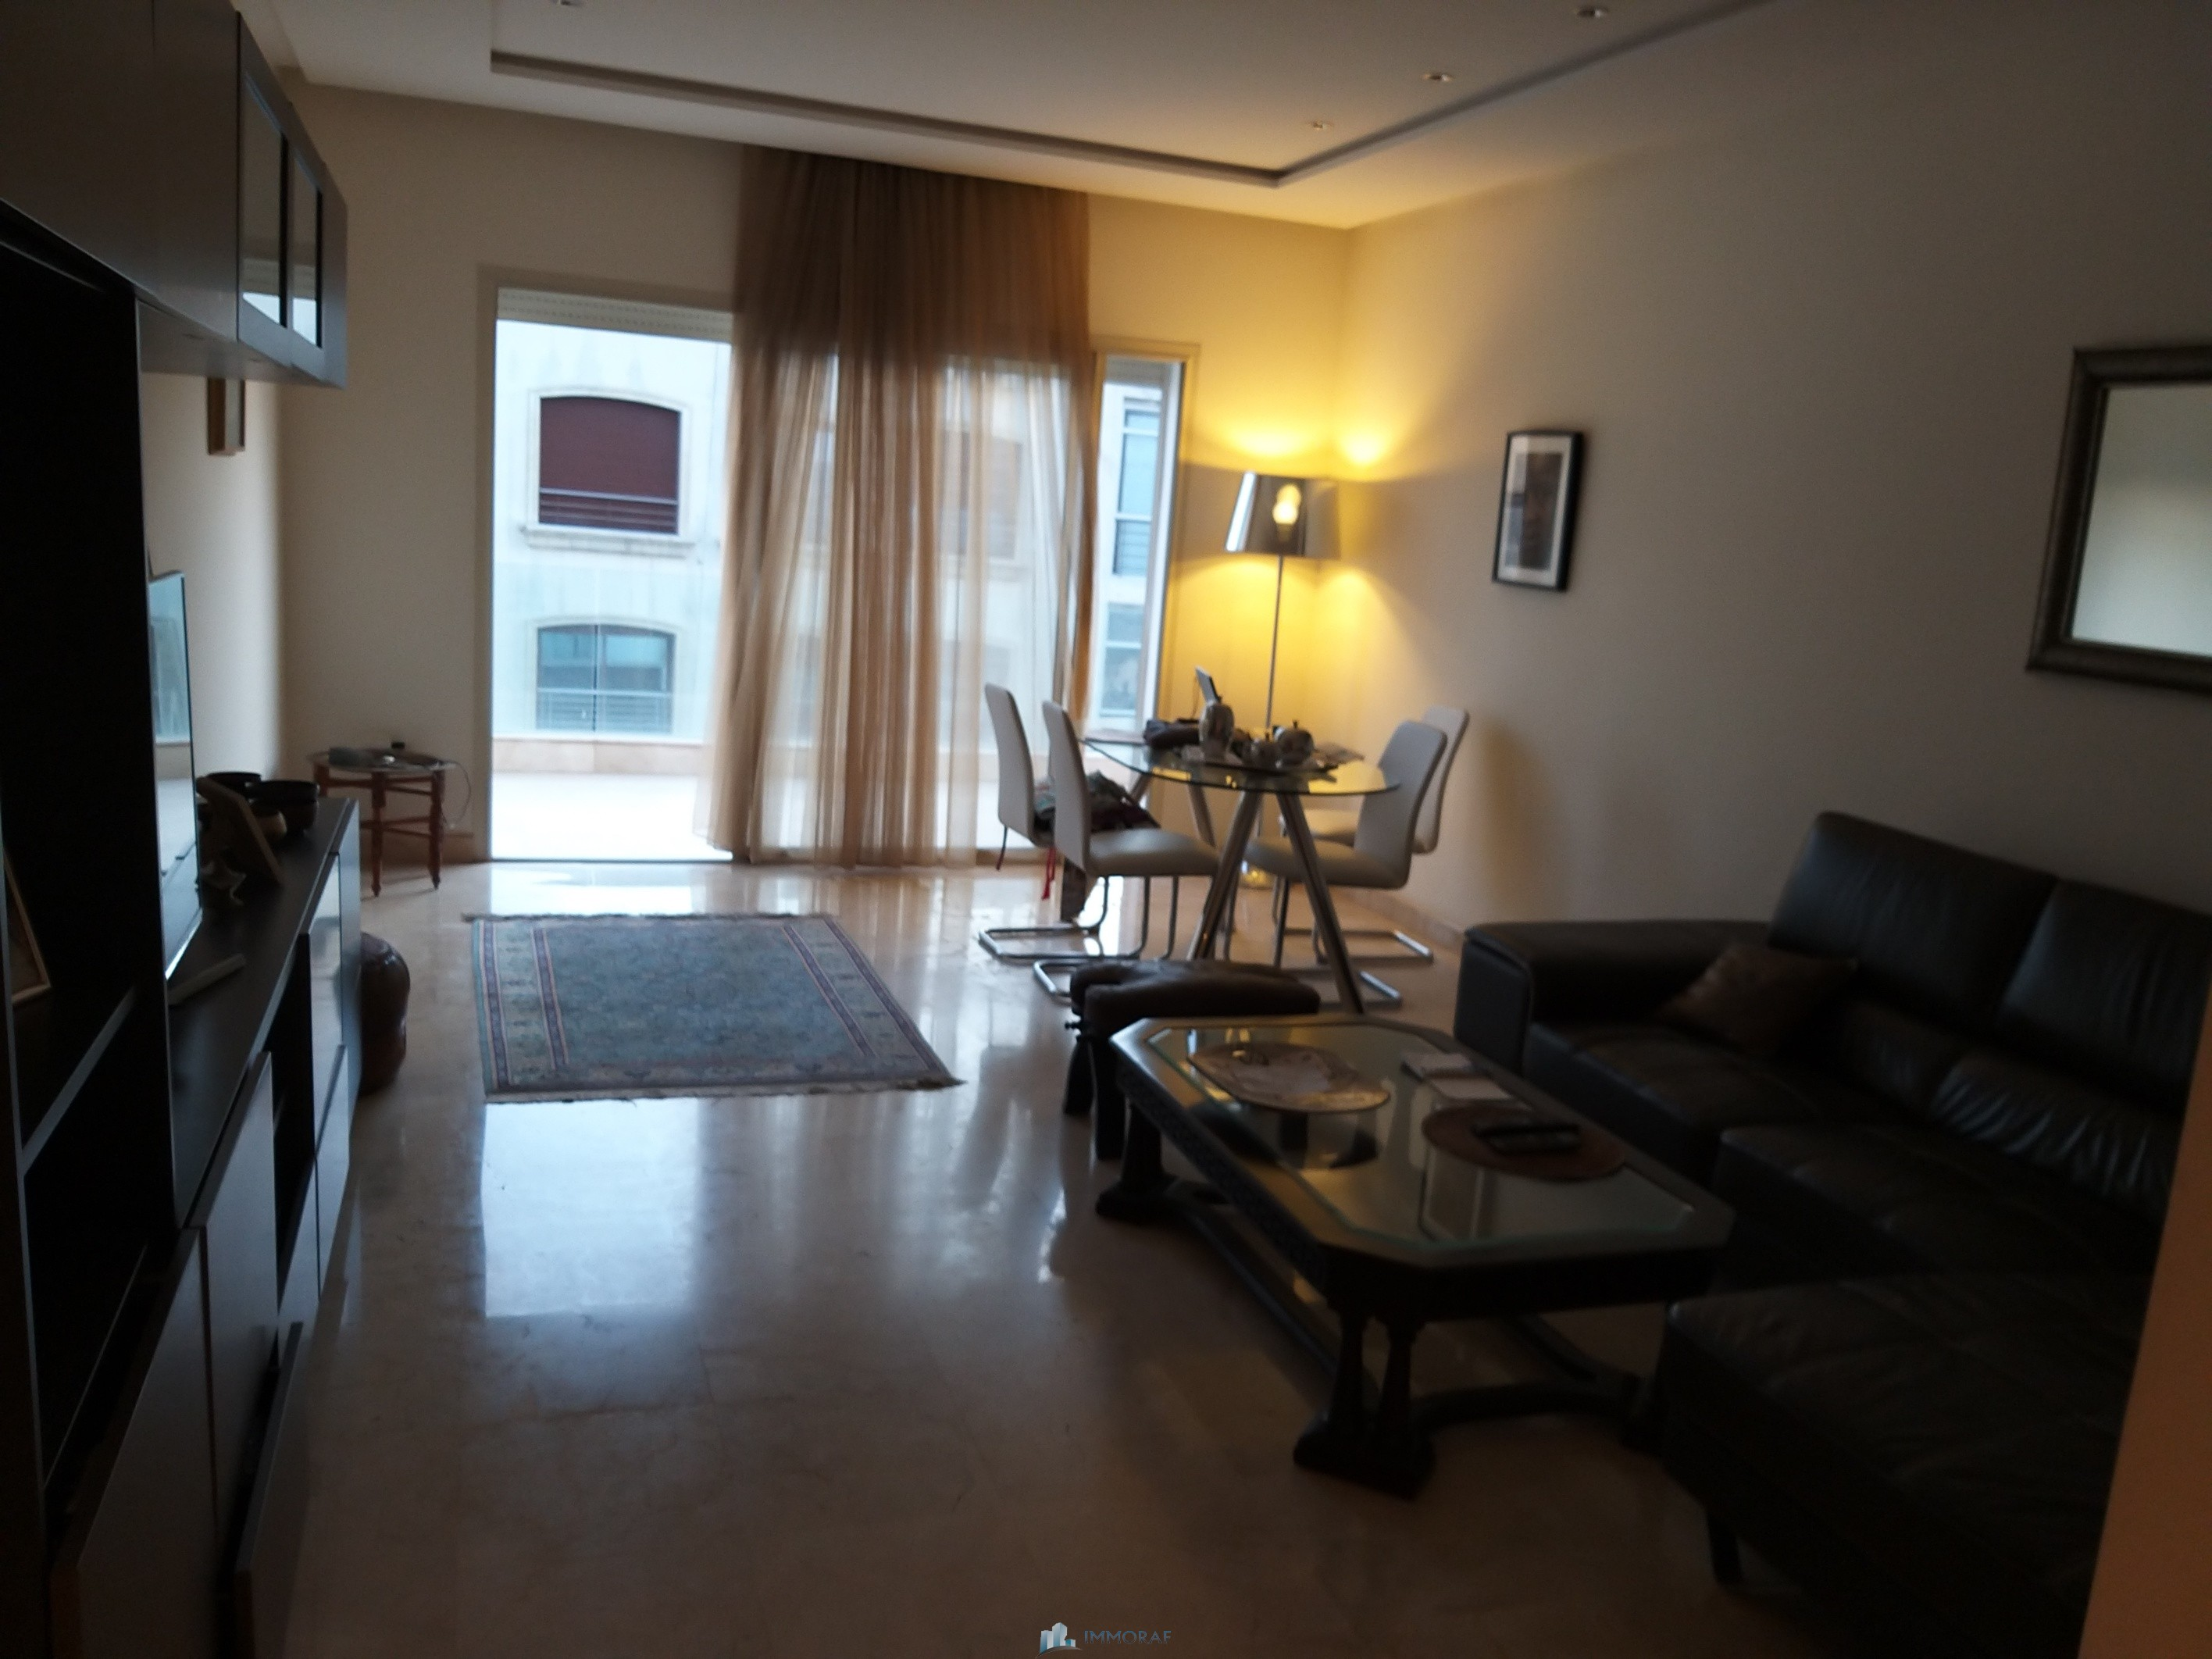 Location appartement vide Racine casablanca